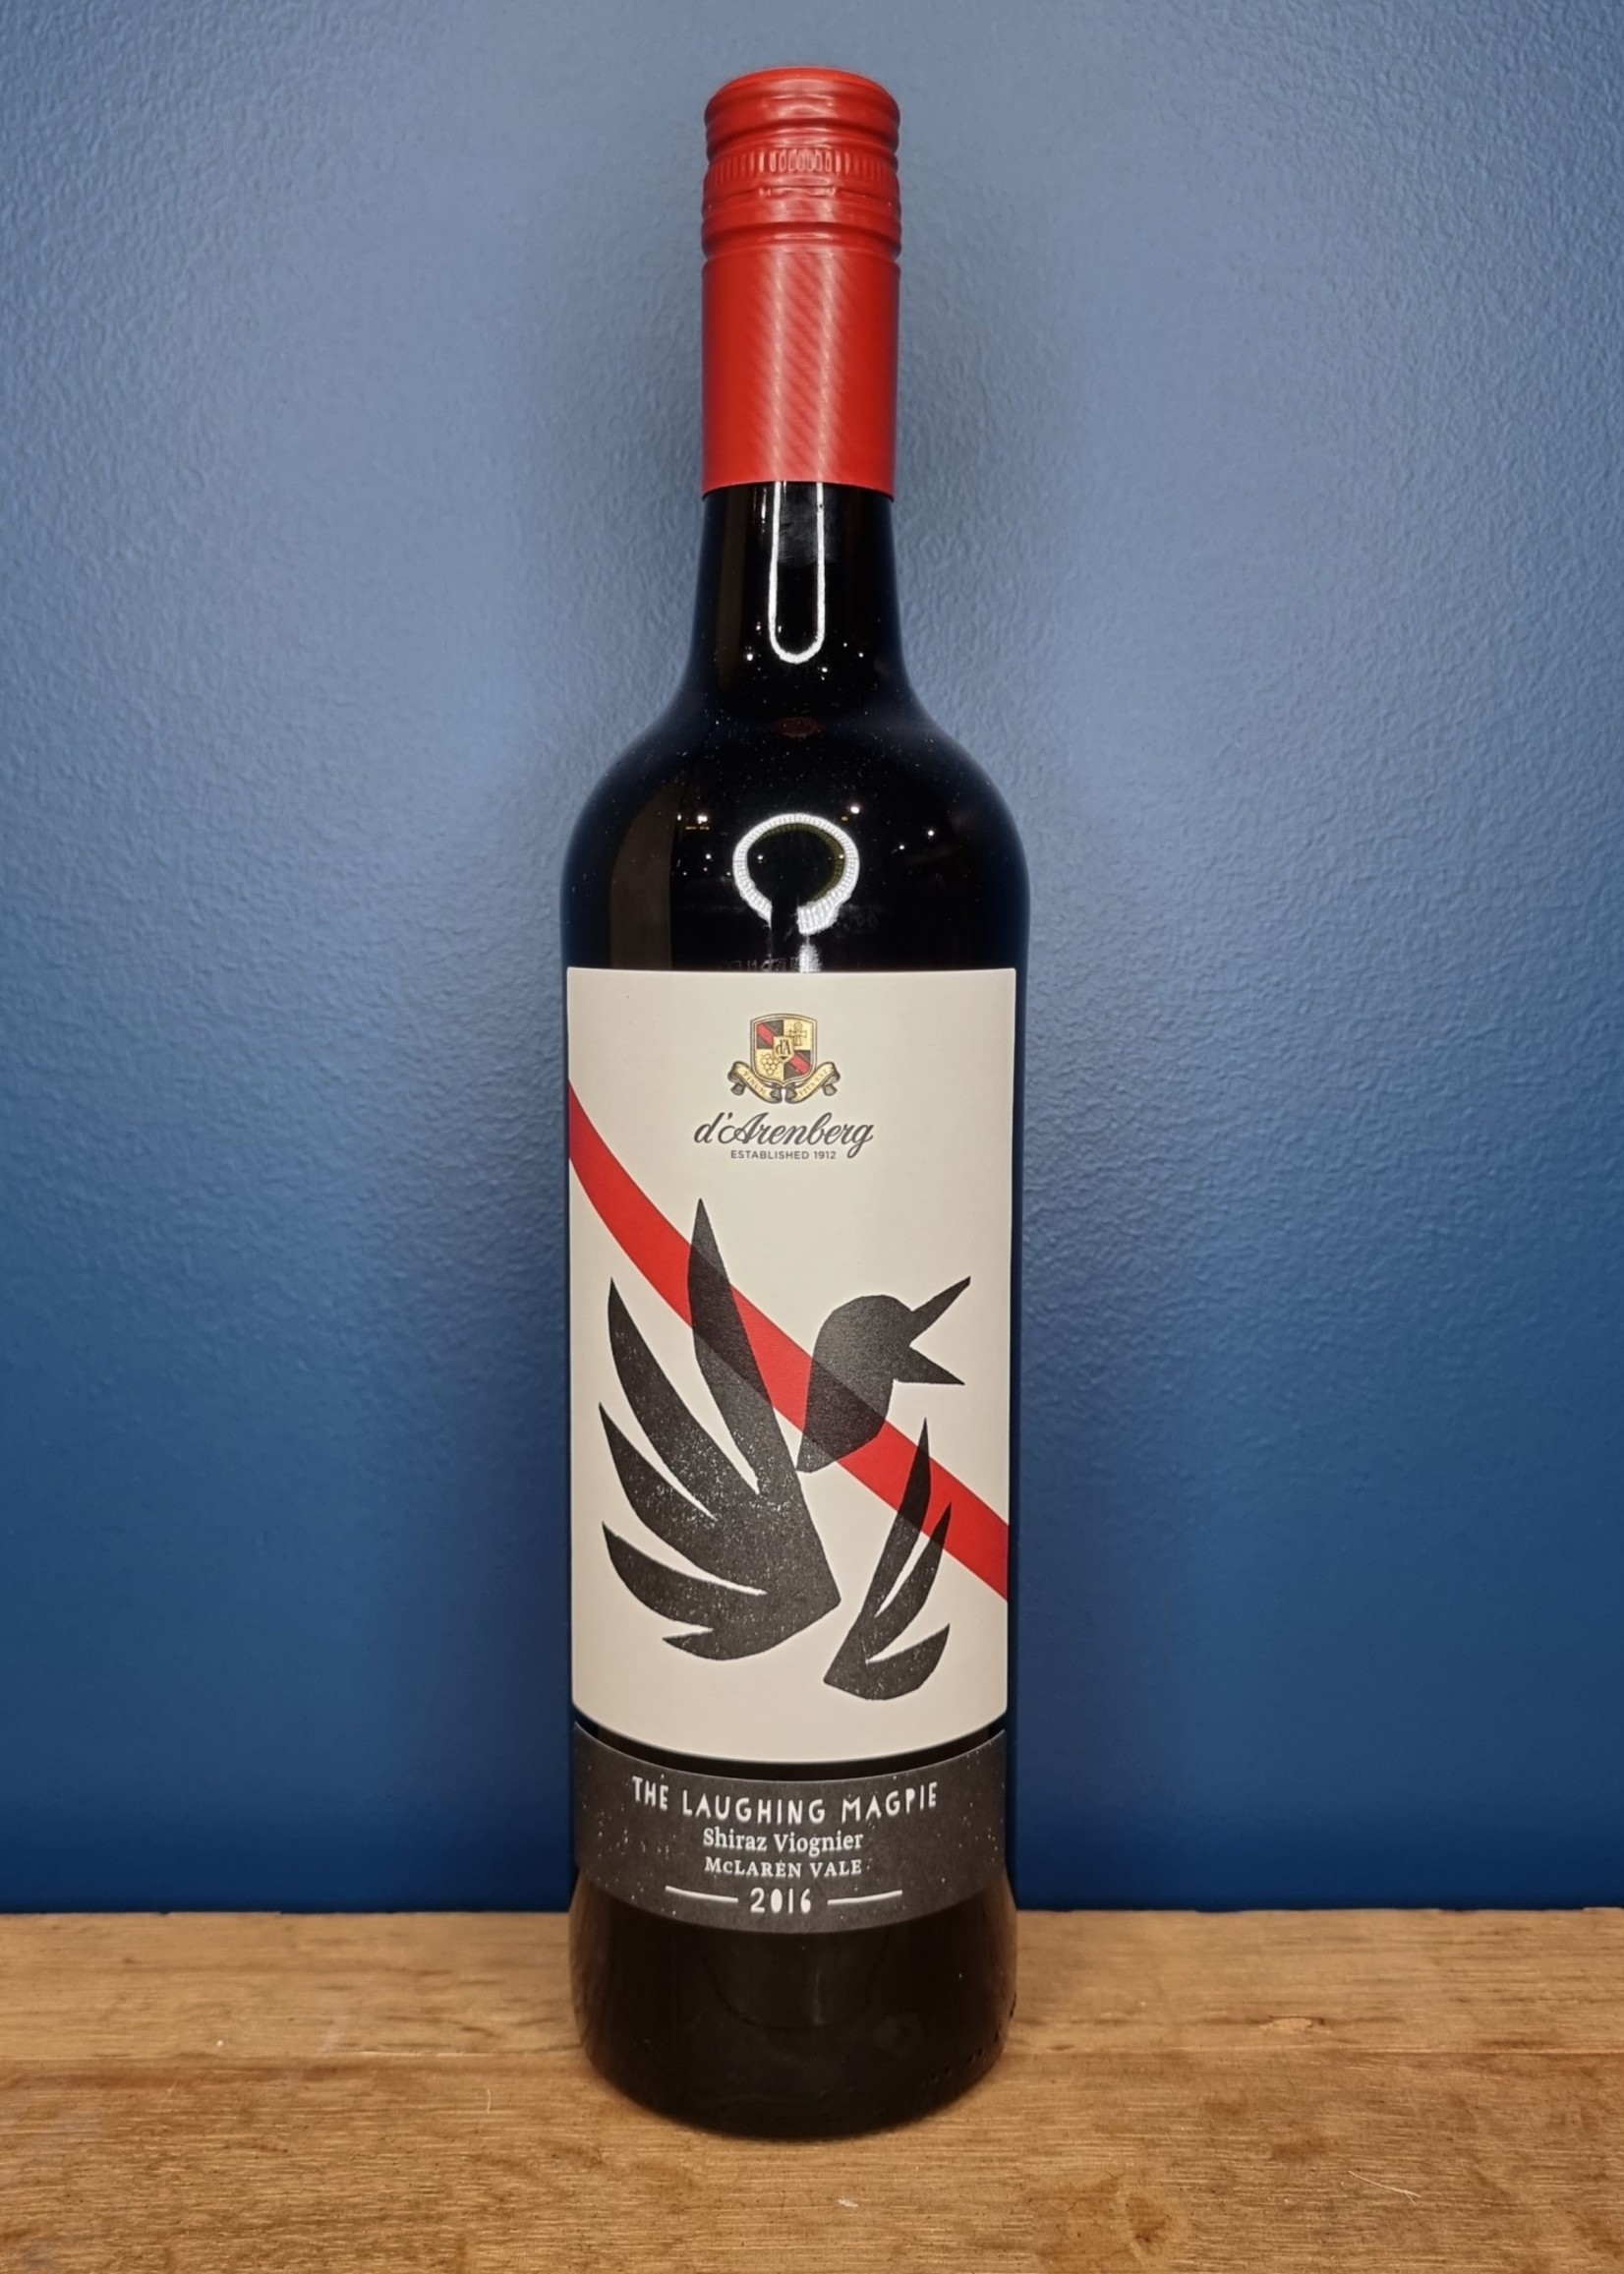 d'Arenberg d'Arenberg The Laughing Magpie